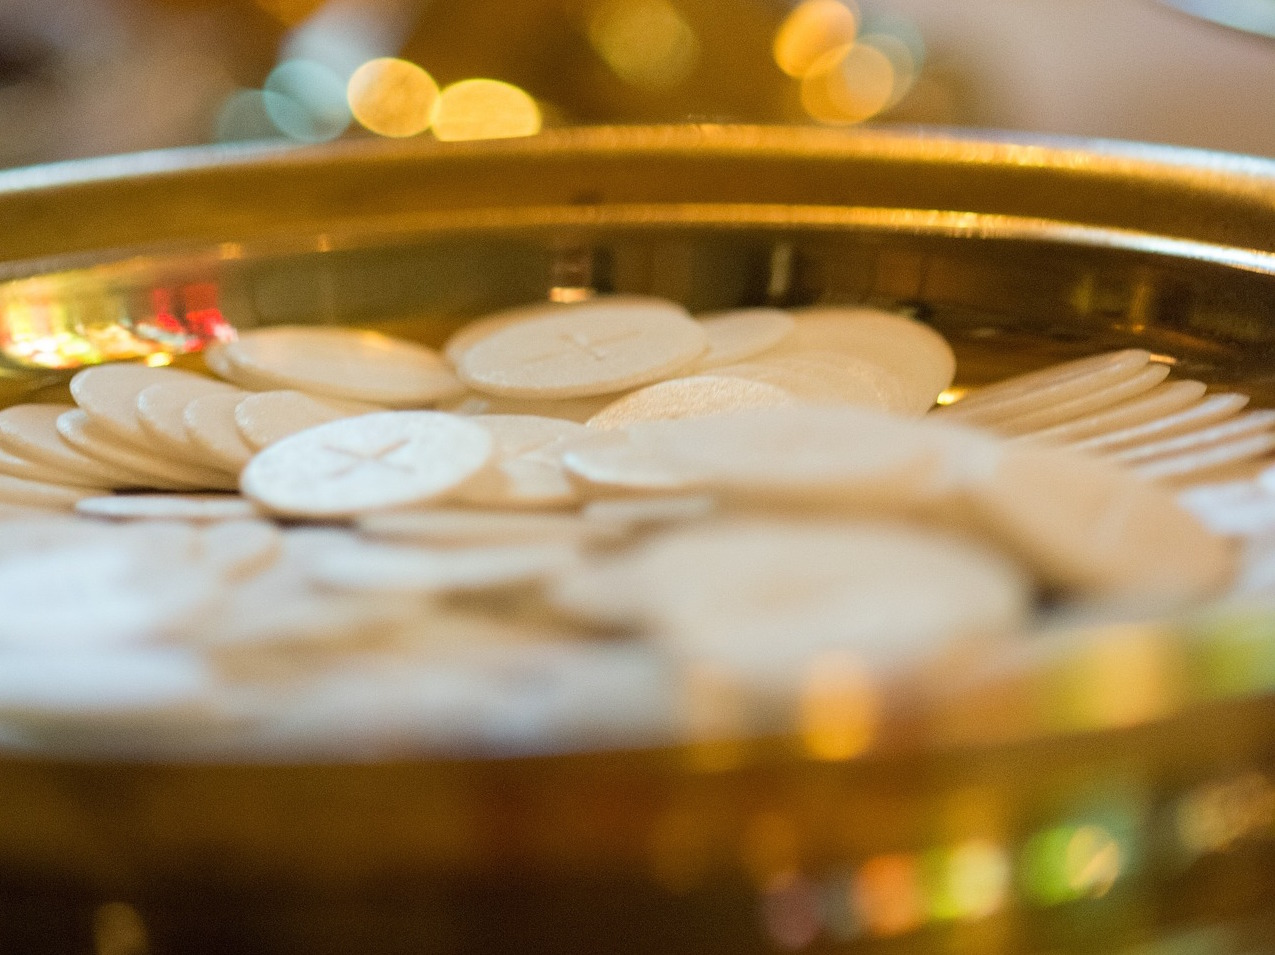 Honoring Communion without First Communion: One Church Strikes a Balance